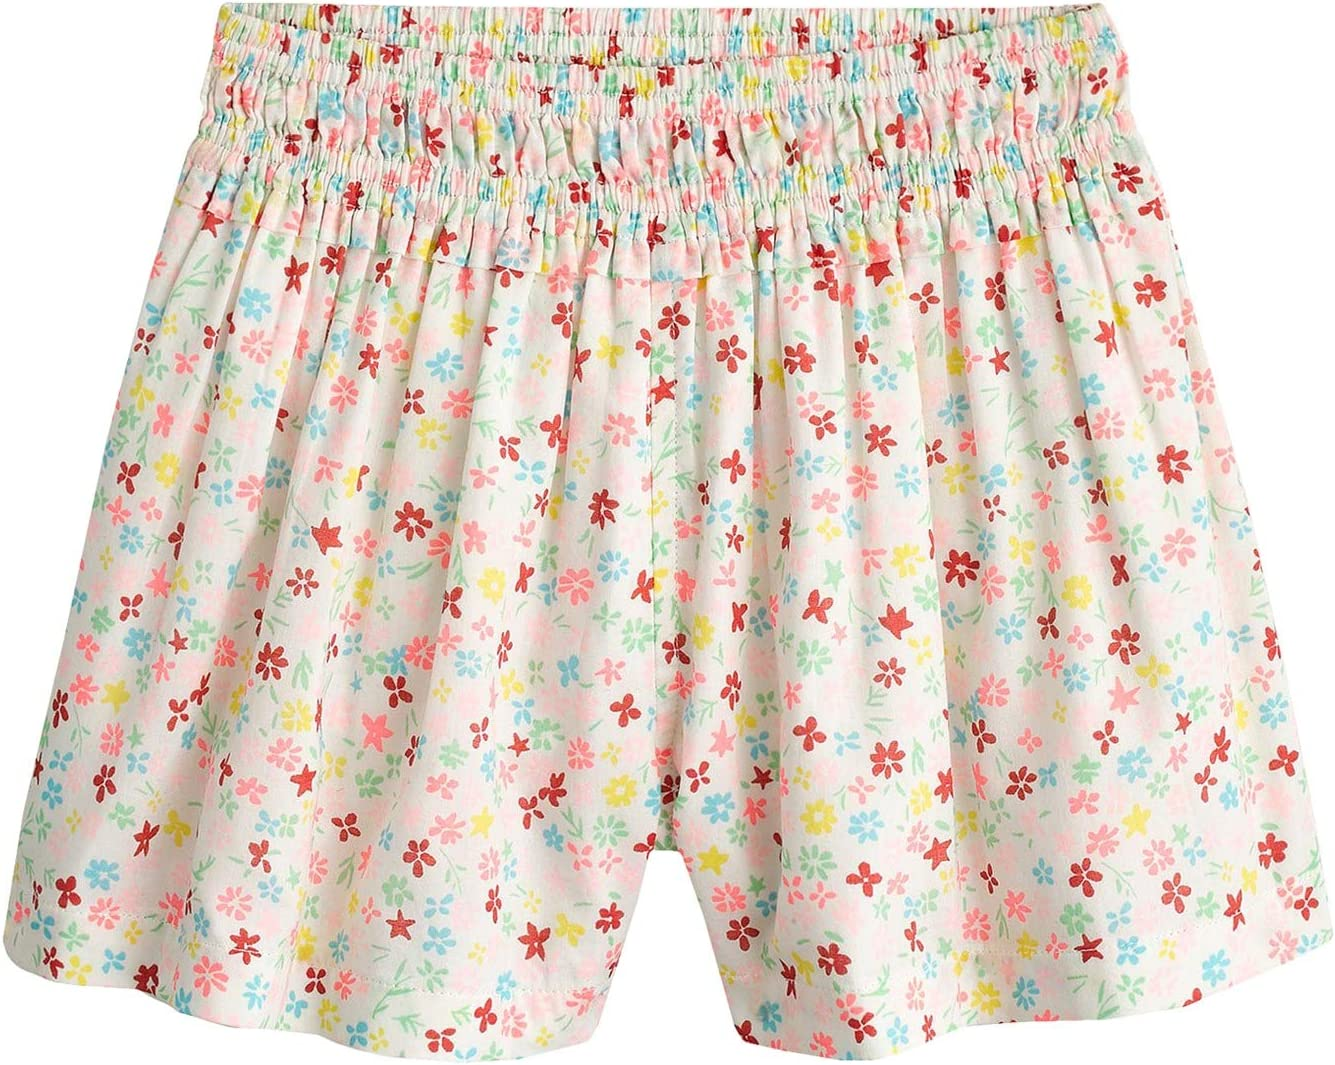 crewcuts by J.Crew? Ditzy Floral Smocked Shorts